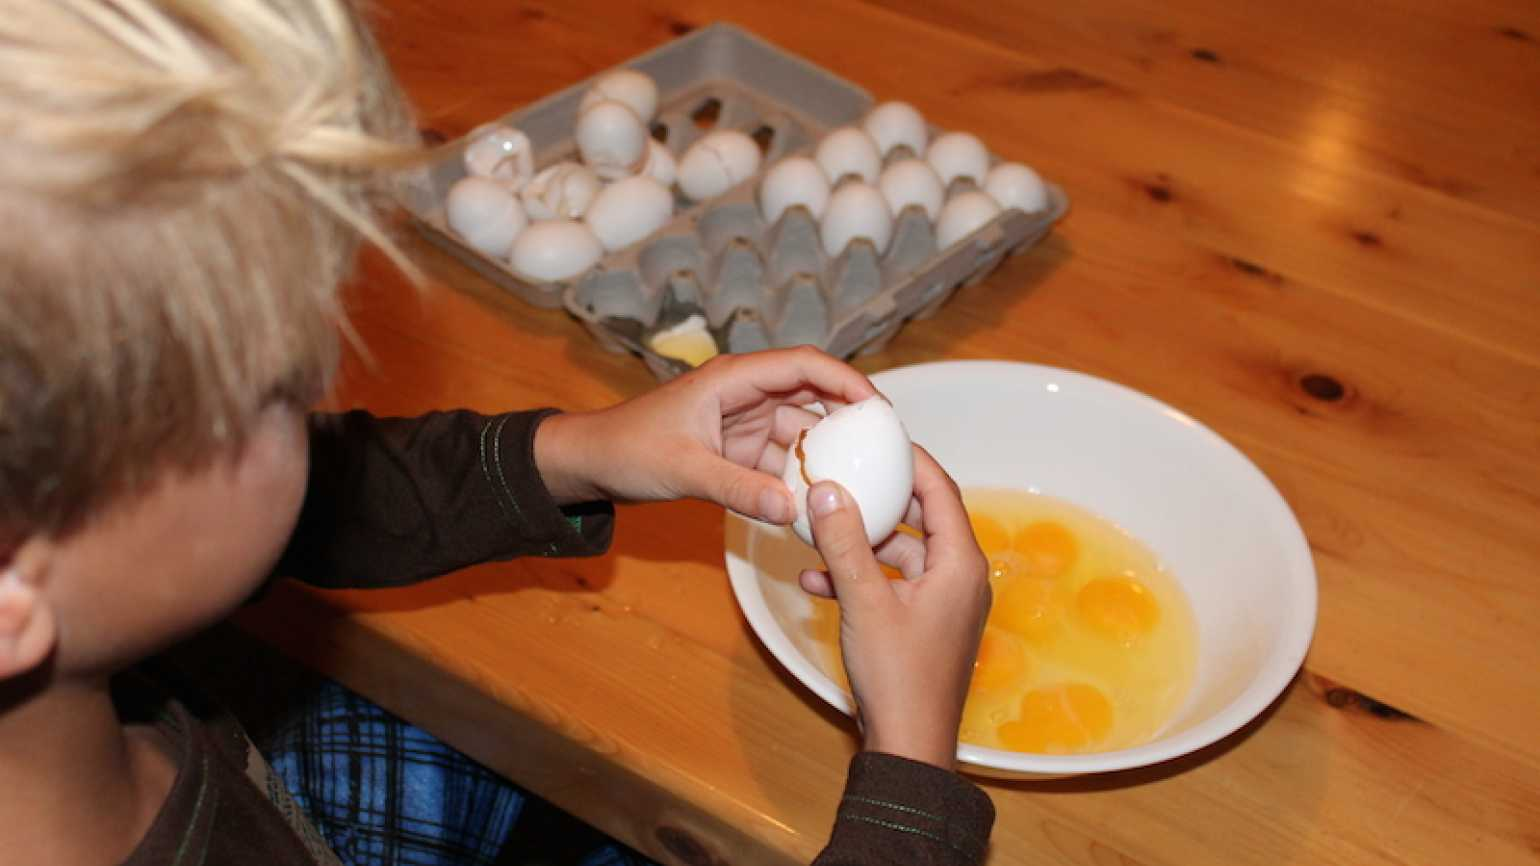 Shawnelle's son cracks eggs into a bowl.